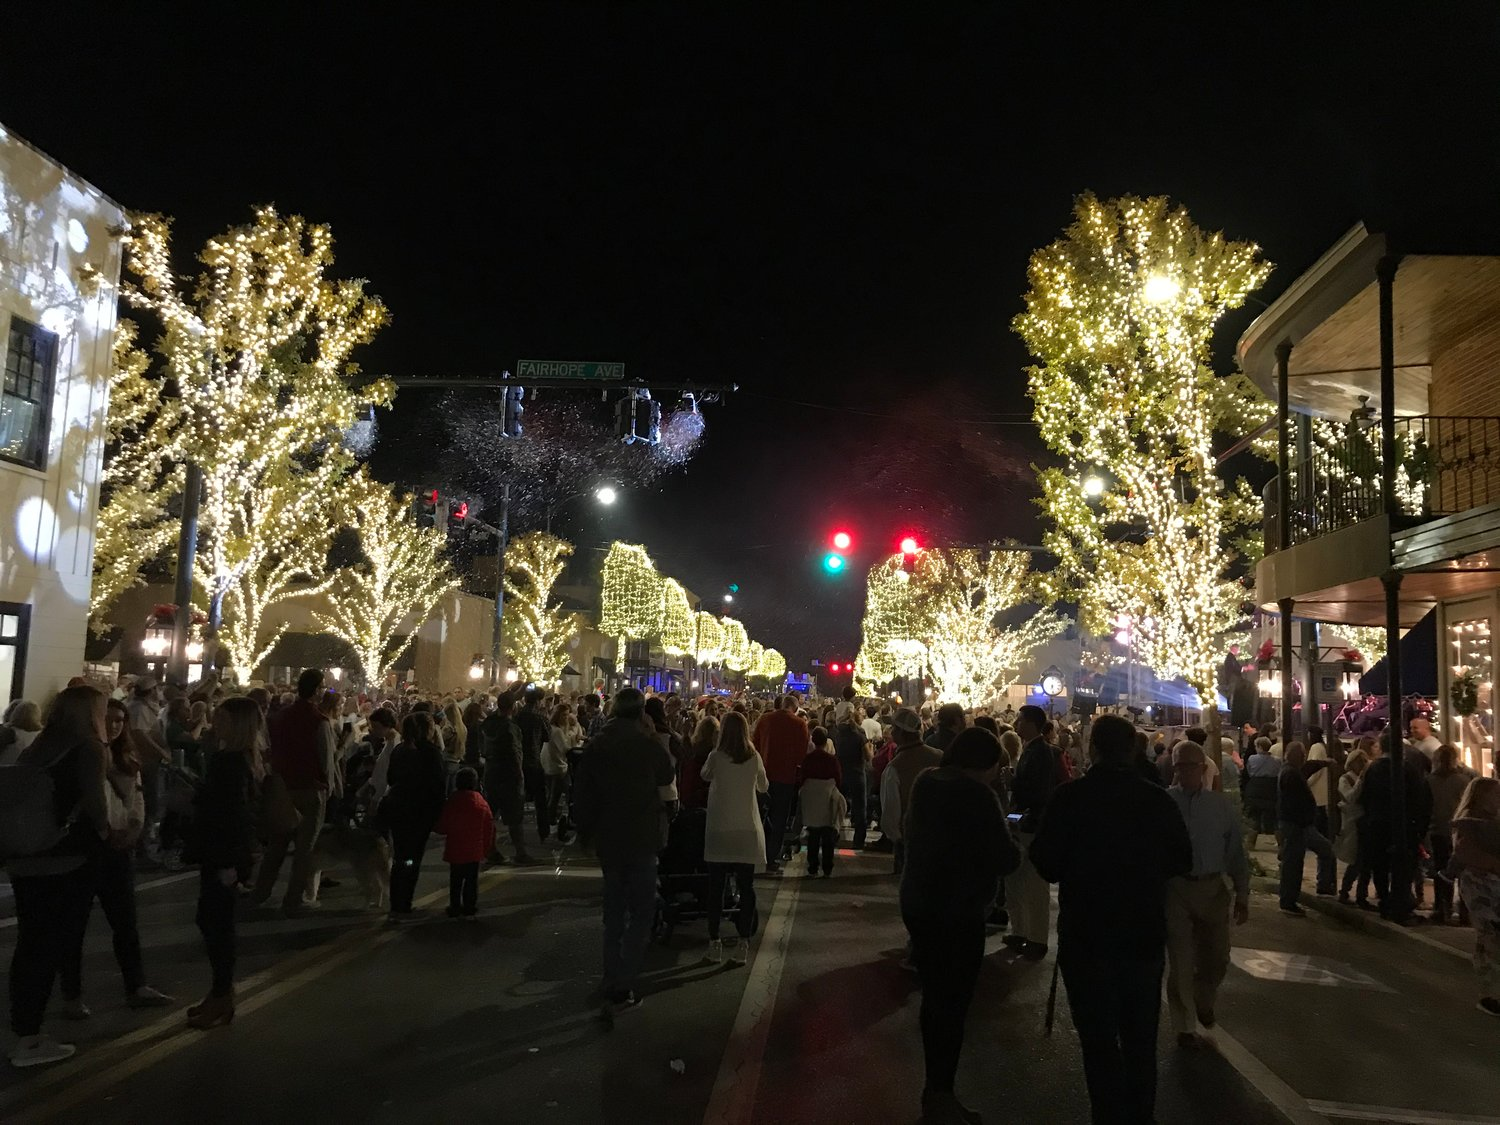 COVID restrictions could change Fairhope events